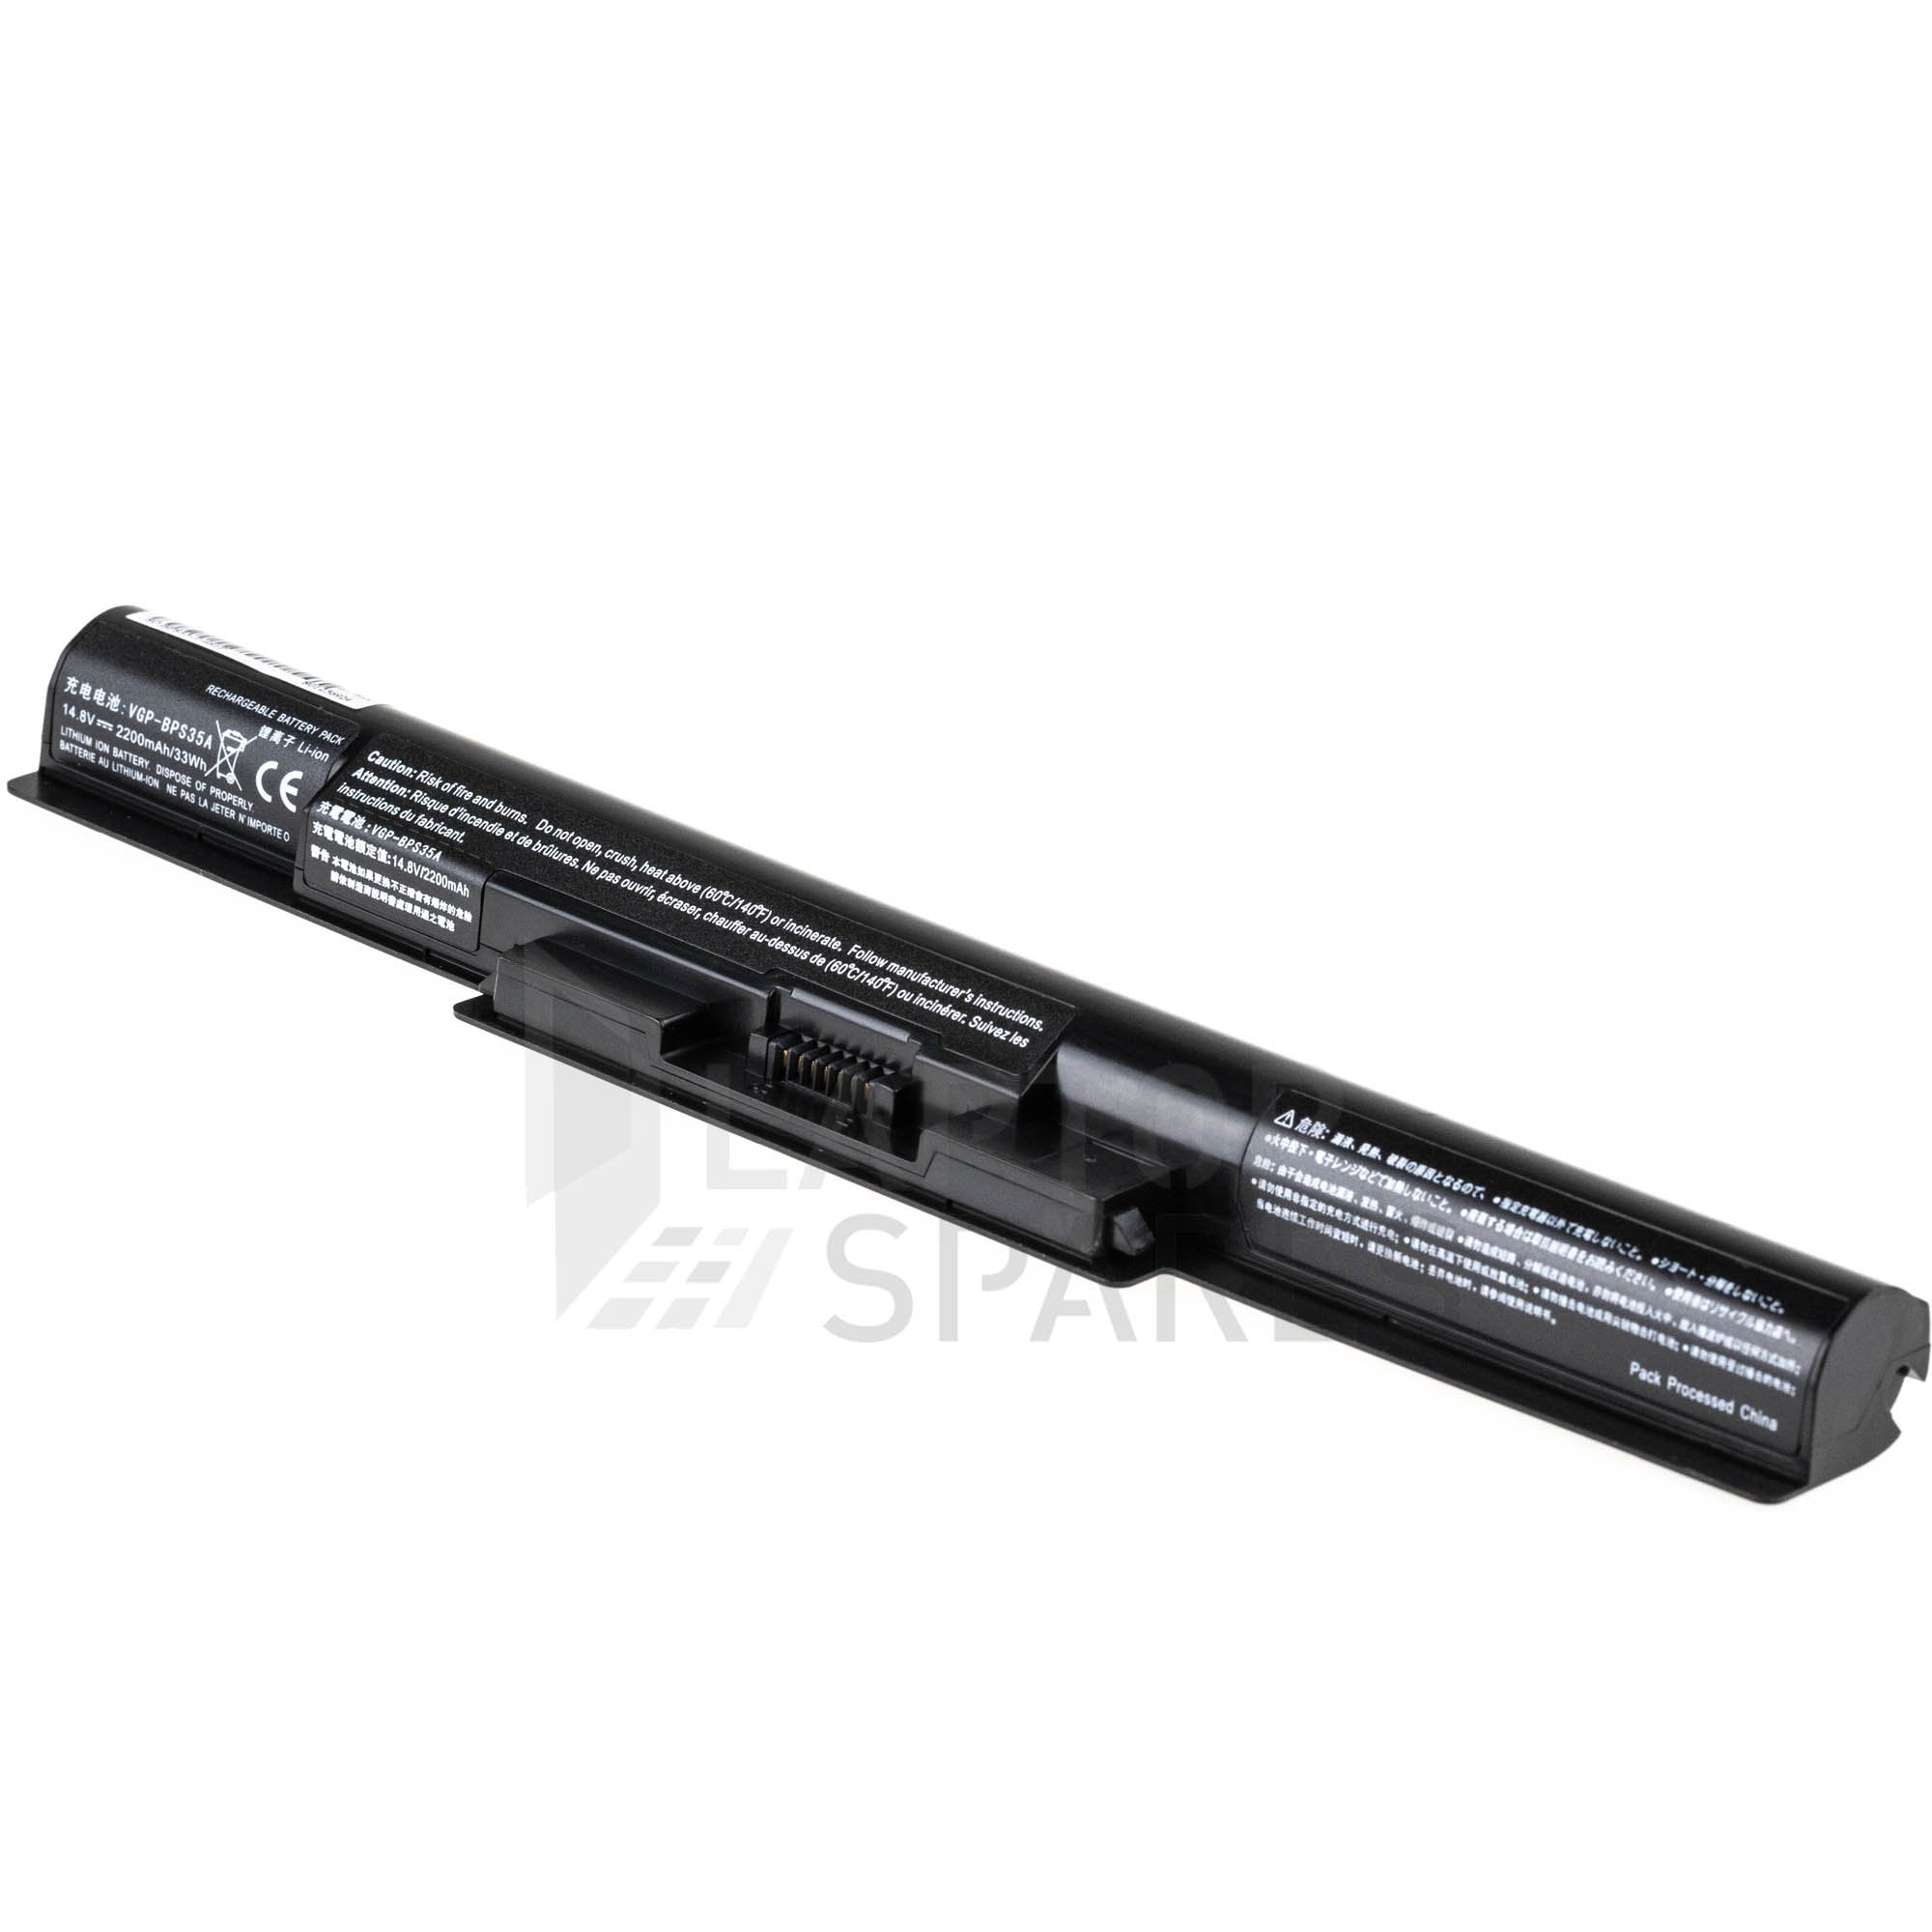 Sony Vaio F15326SCB F15326SCP 2200mAh 4 Cell Battery